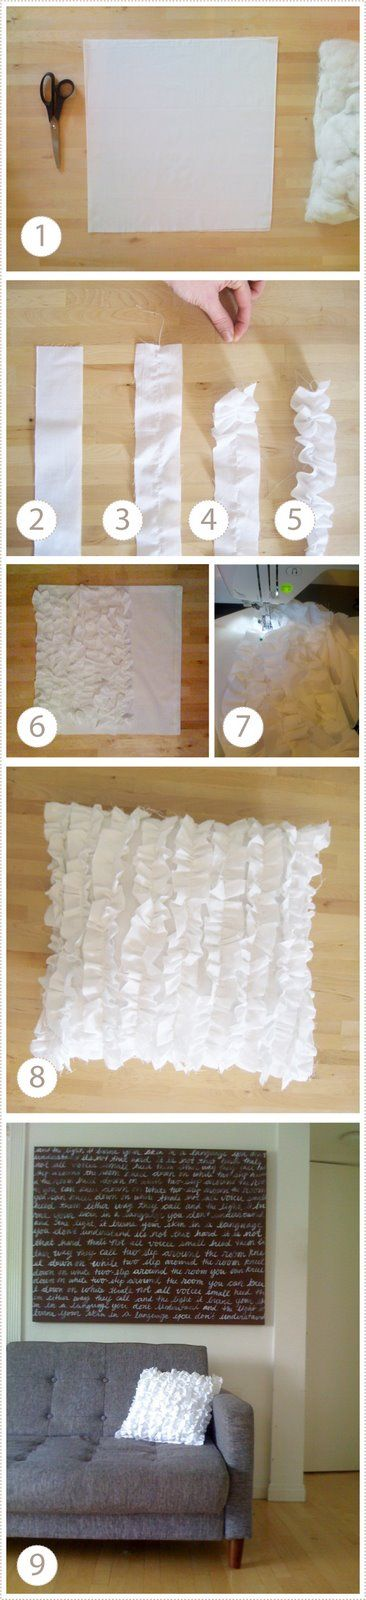 want to try it! Easy ruffled pillows!  something i can do haha